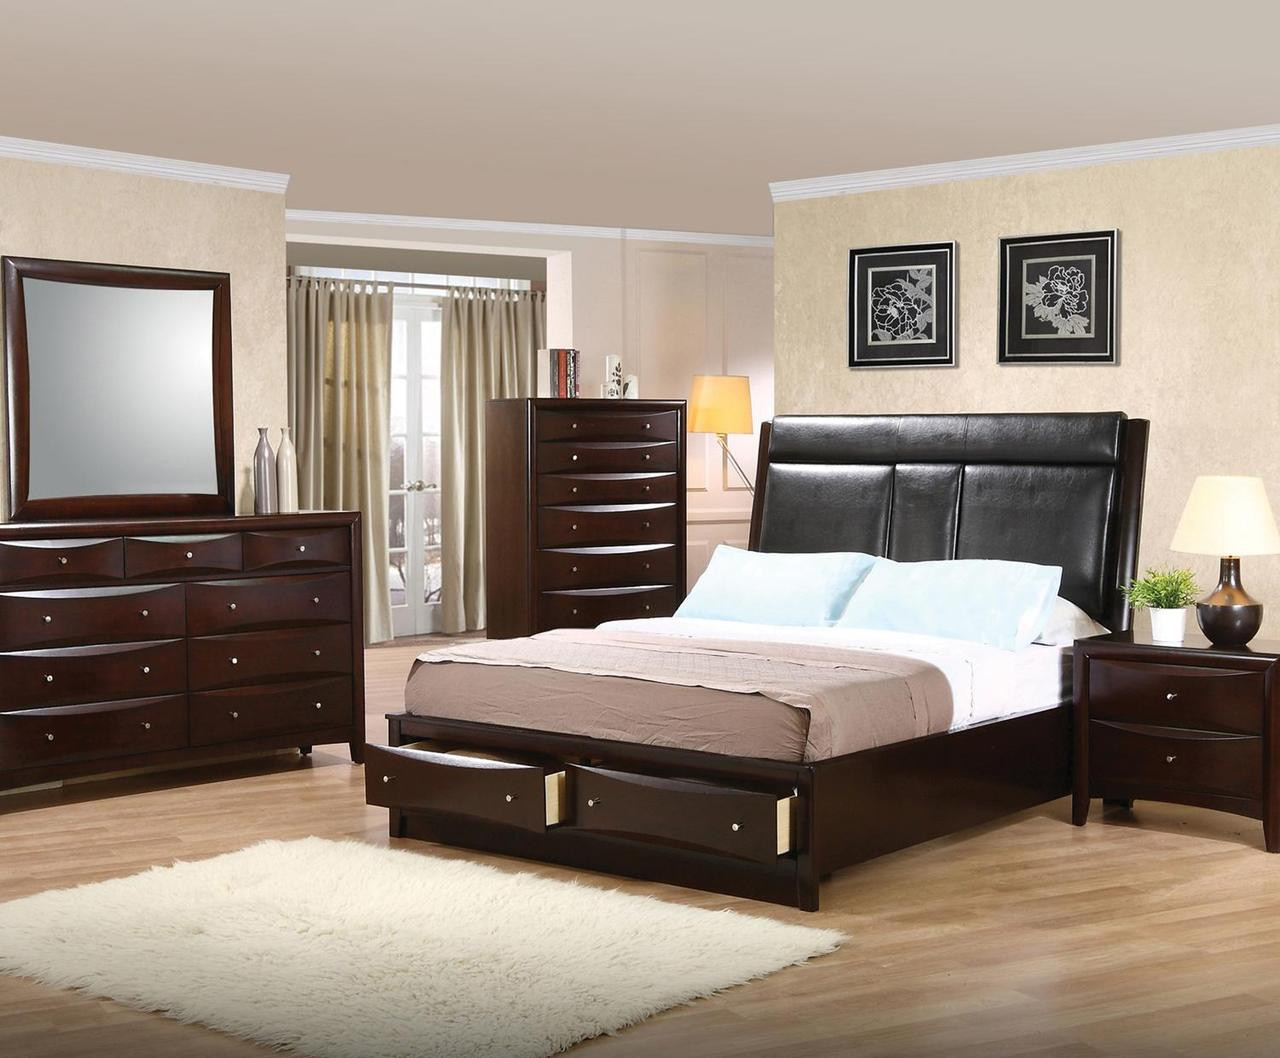 . Fey Cappuccino Platform Bed with Console 6 PC Bedroom Set